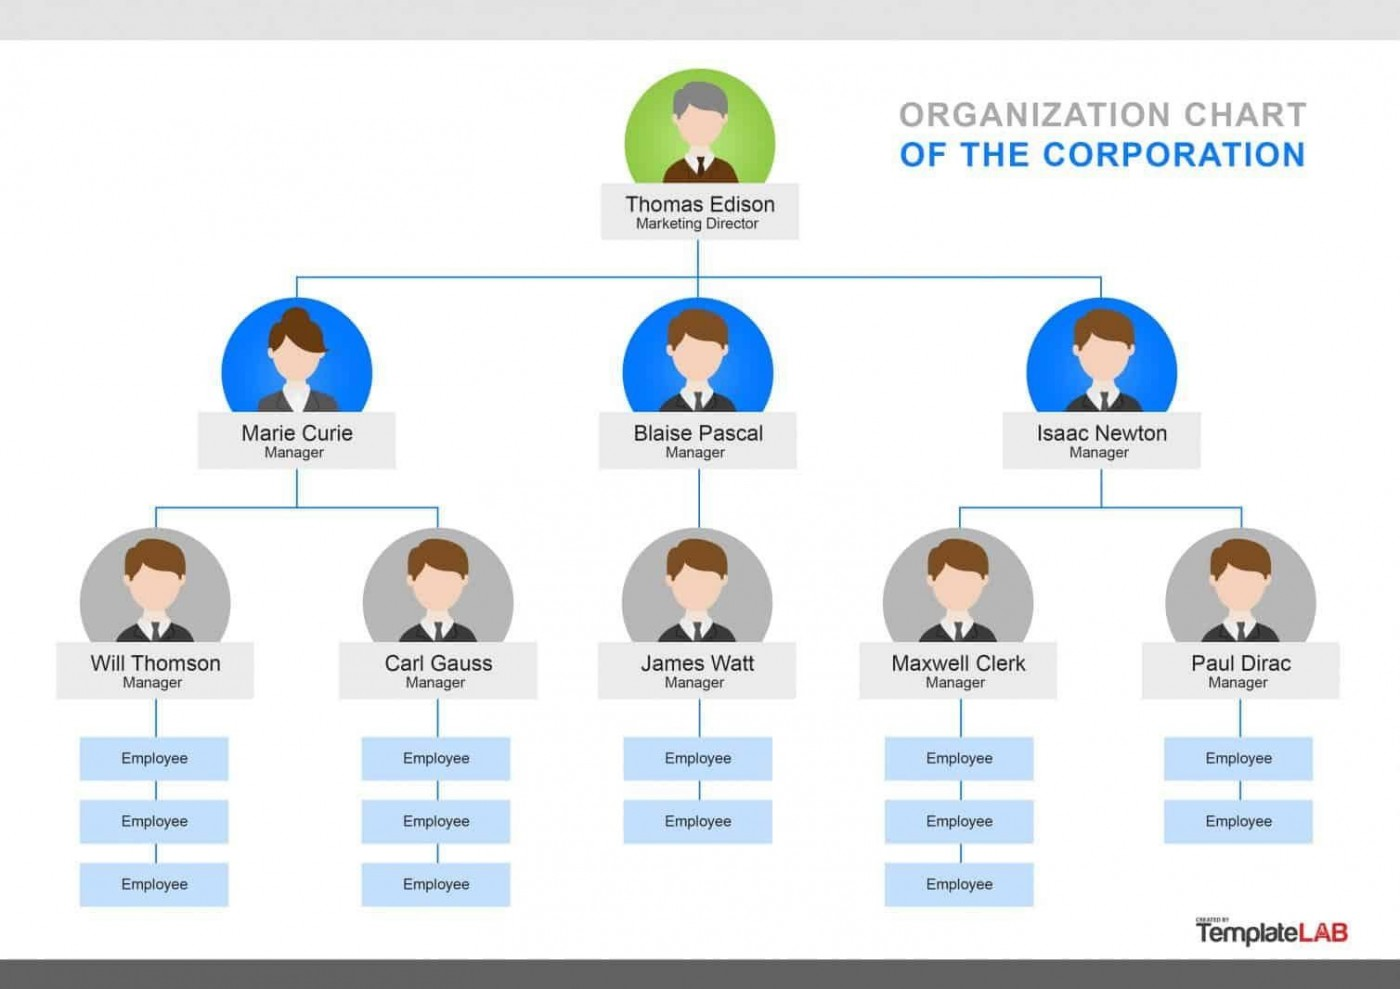 000 Archaicawful Organizational Chart In Microsoft Powerpoint 2010 High Definition 1400